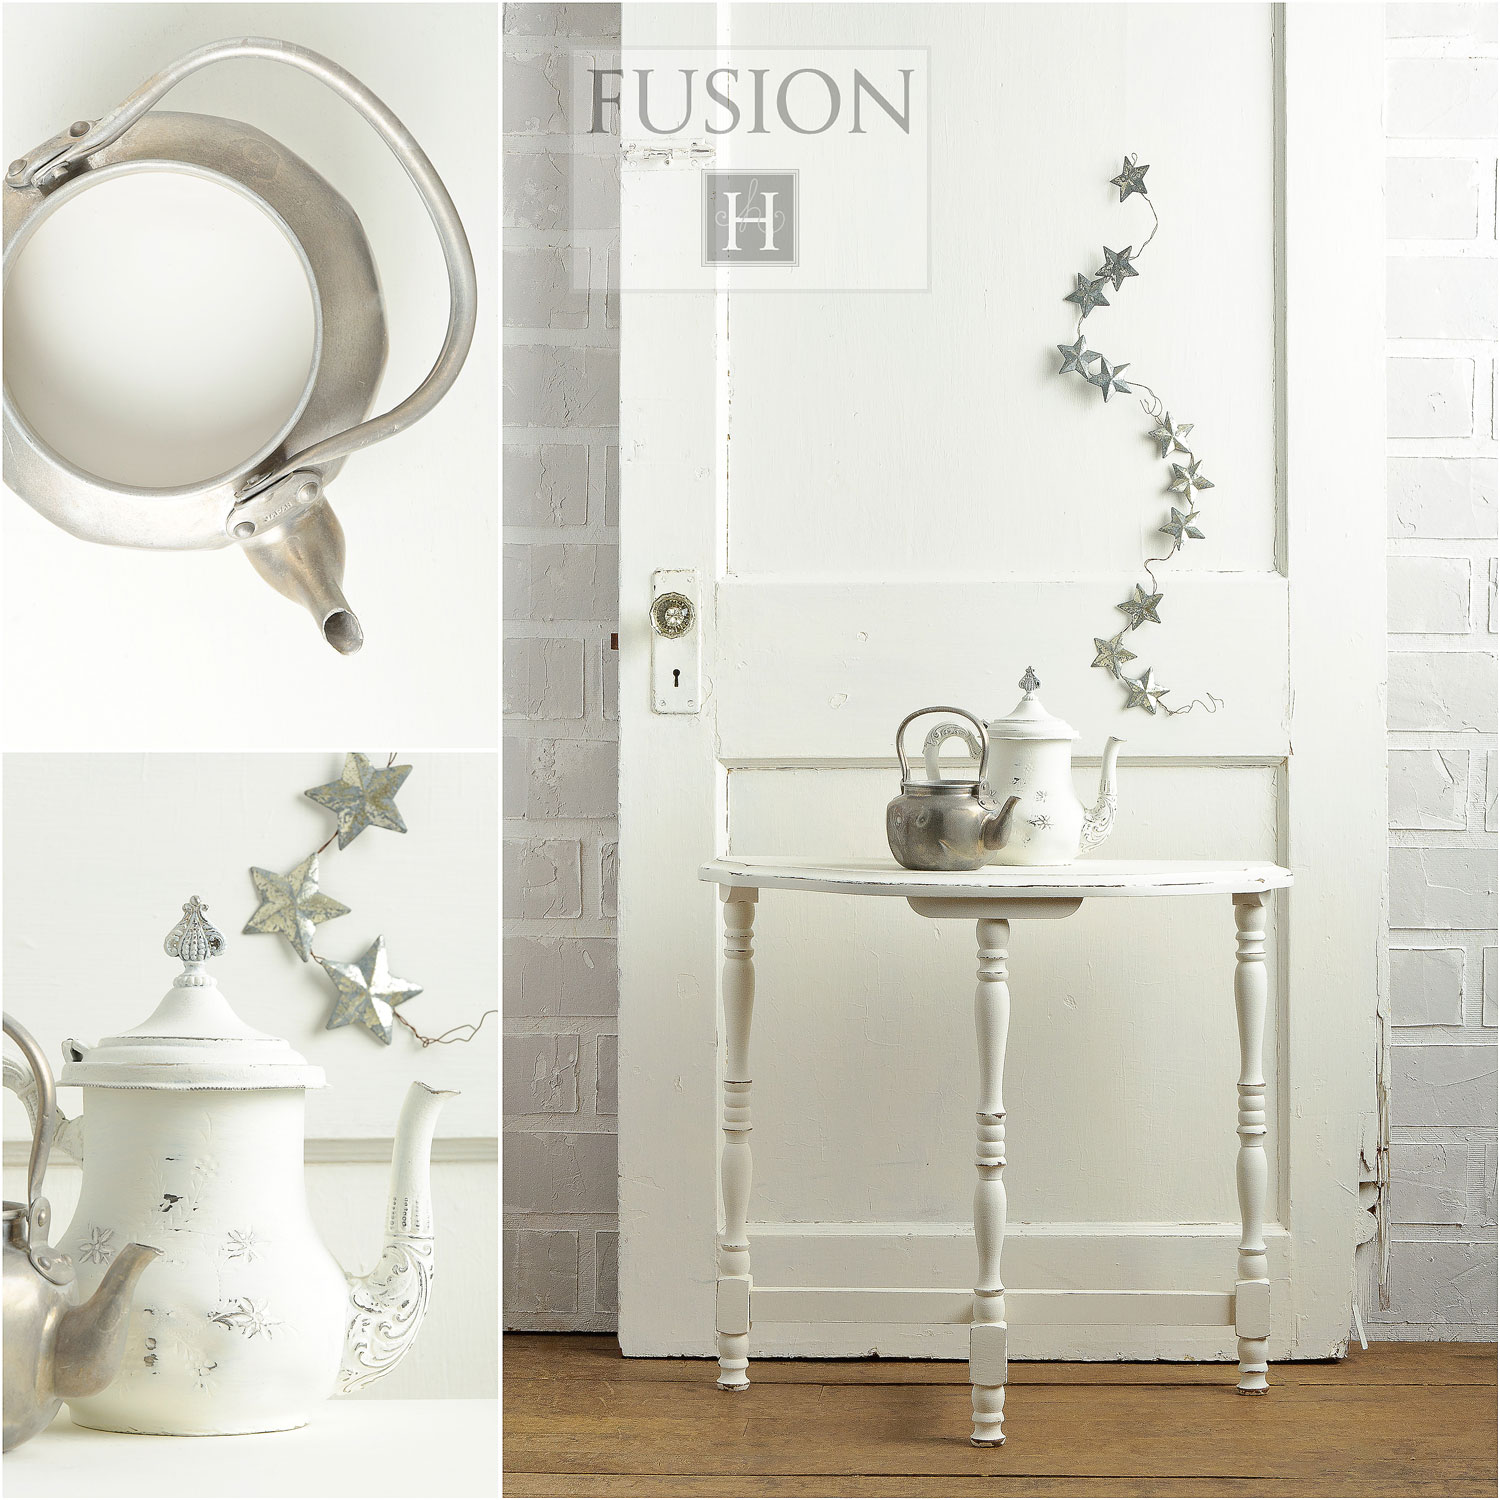 Fusion Mineral Paint in the colour Casement